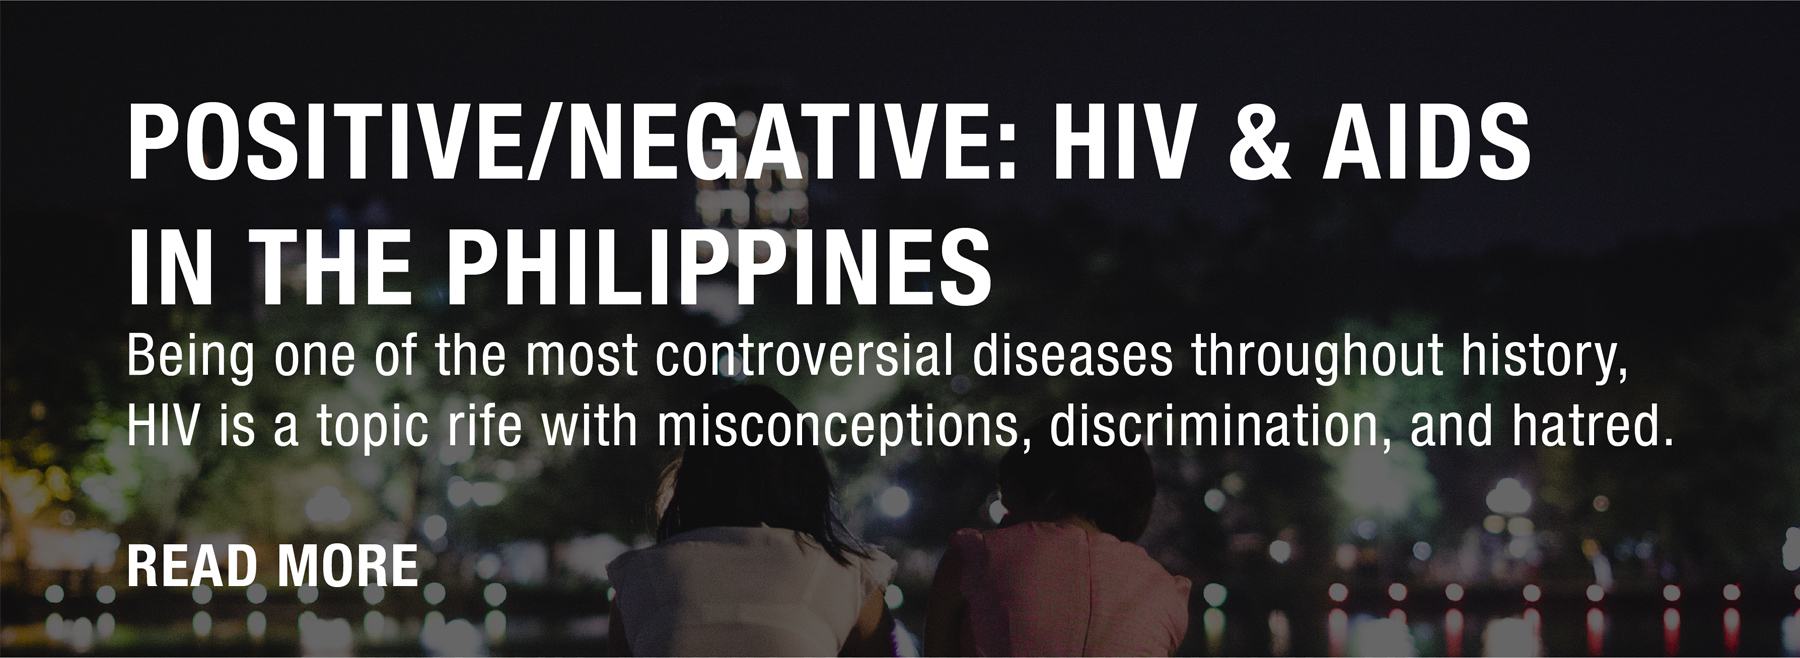 Positive/Negative: HIV and AIDS in the Philippines / Click to read more